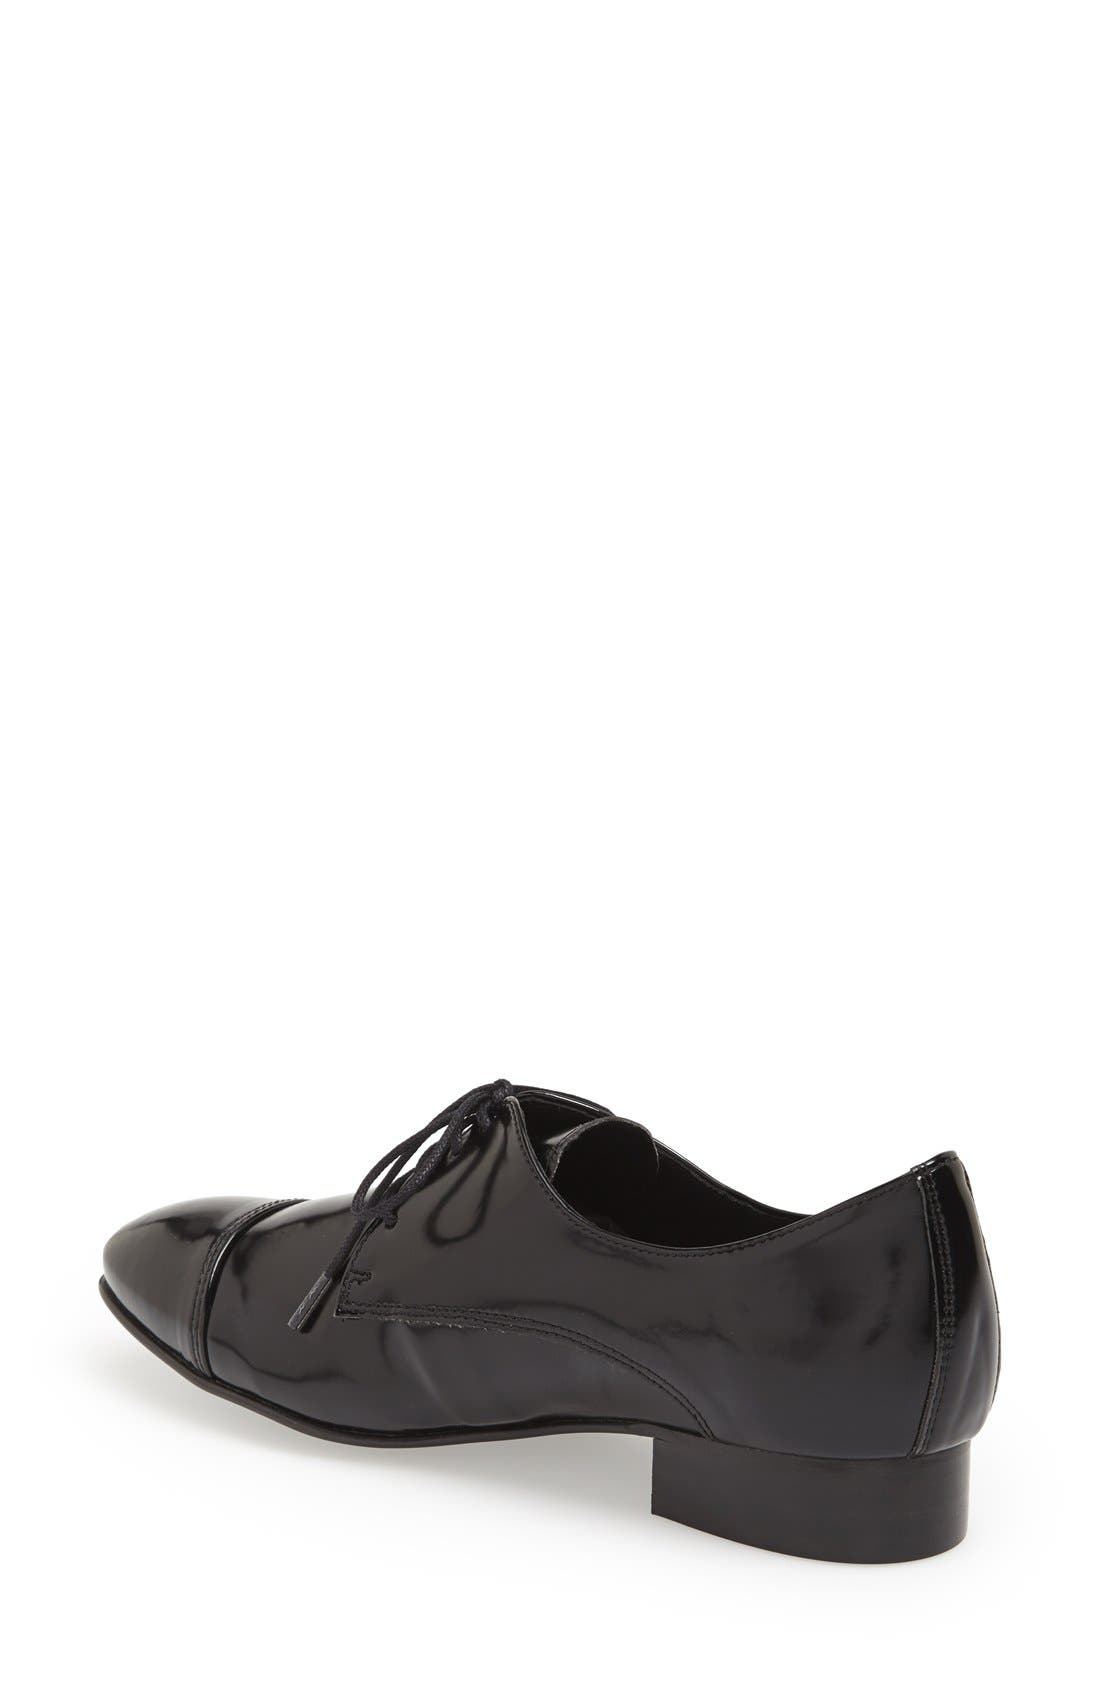 Alternate Image 2  - KG Kurt Geiger 'Lennox' Patent Oxford (Women)